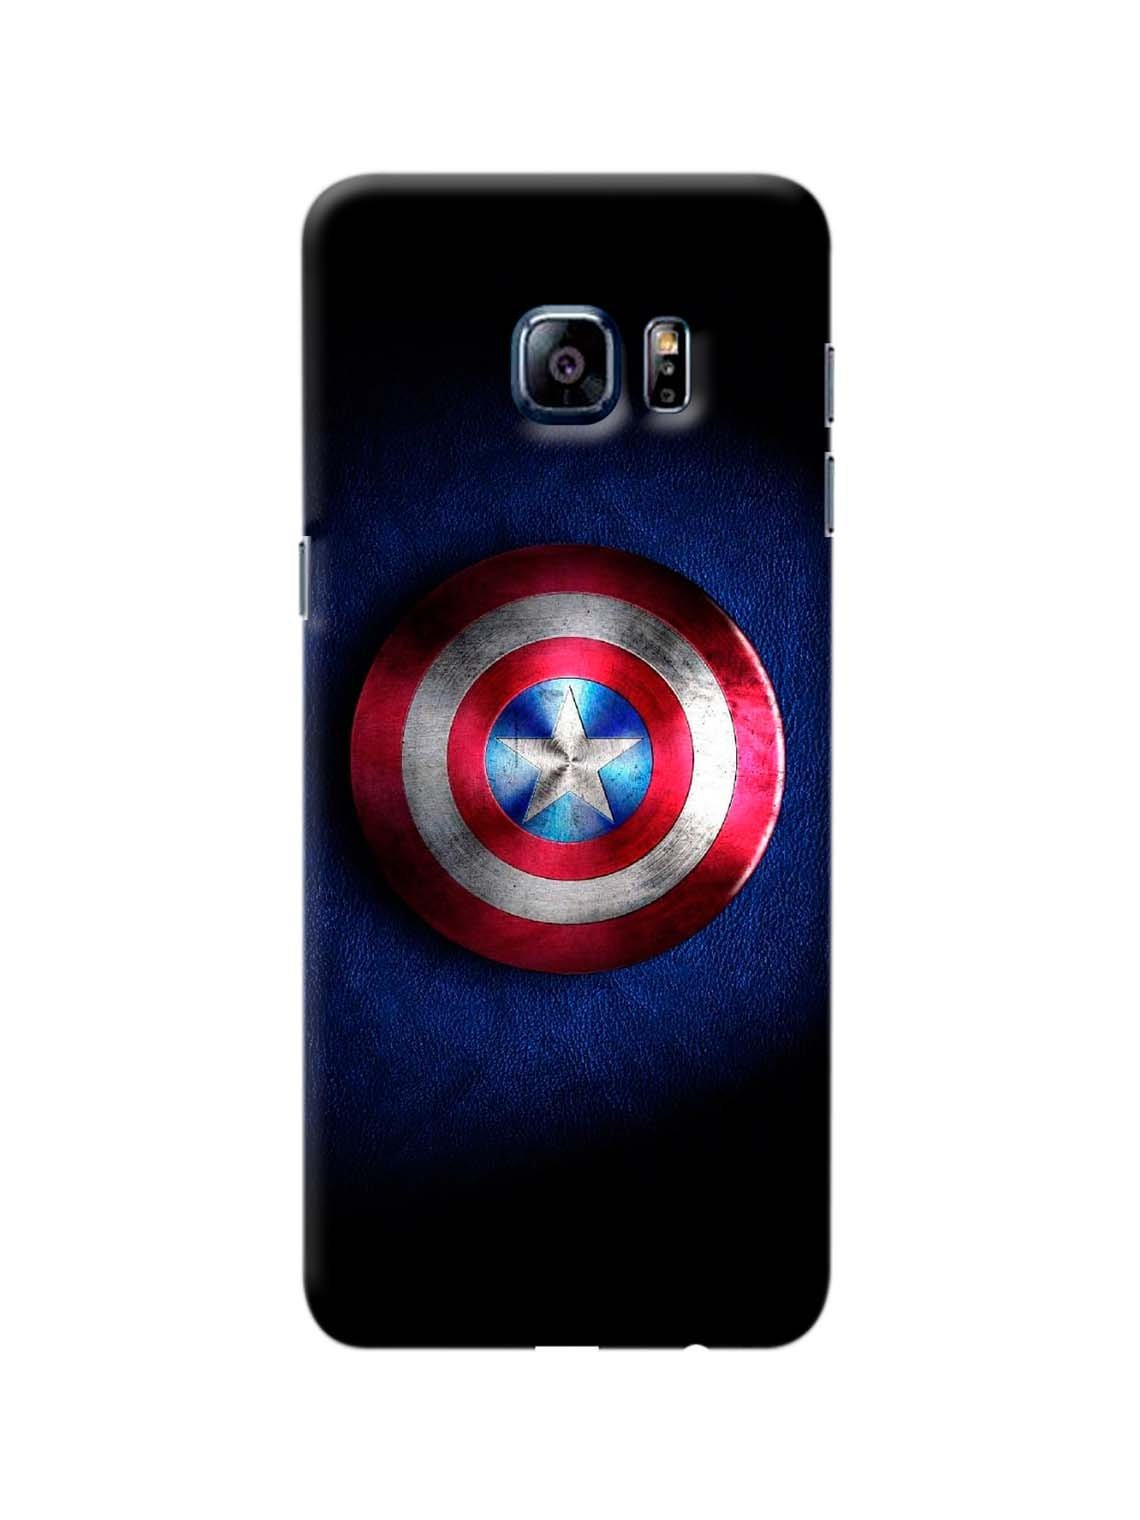 separation shoes ee0c2 cdeb9 Captain America Shield Printed Mobile Case For GALAXY S6 EDGE PLUS